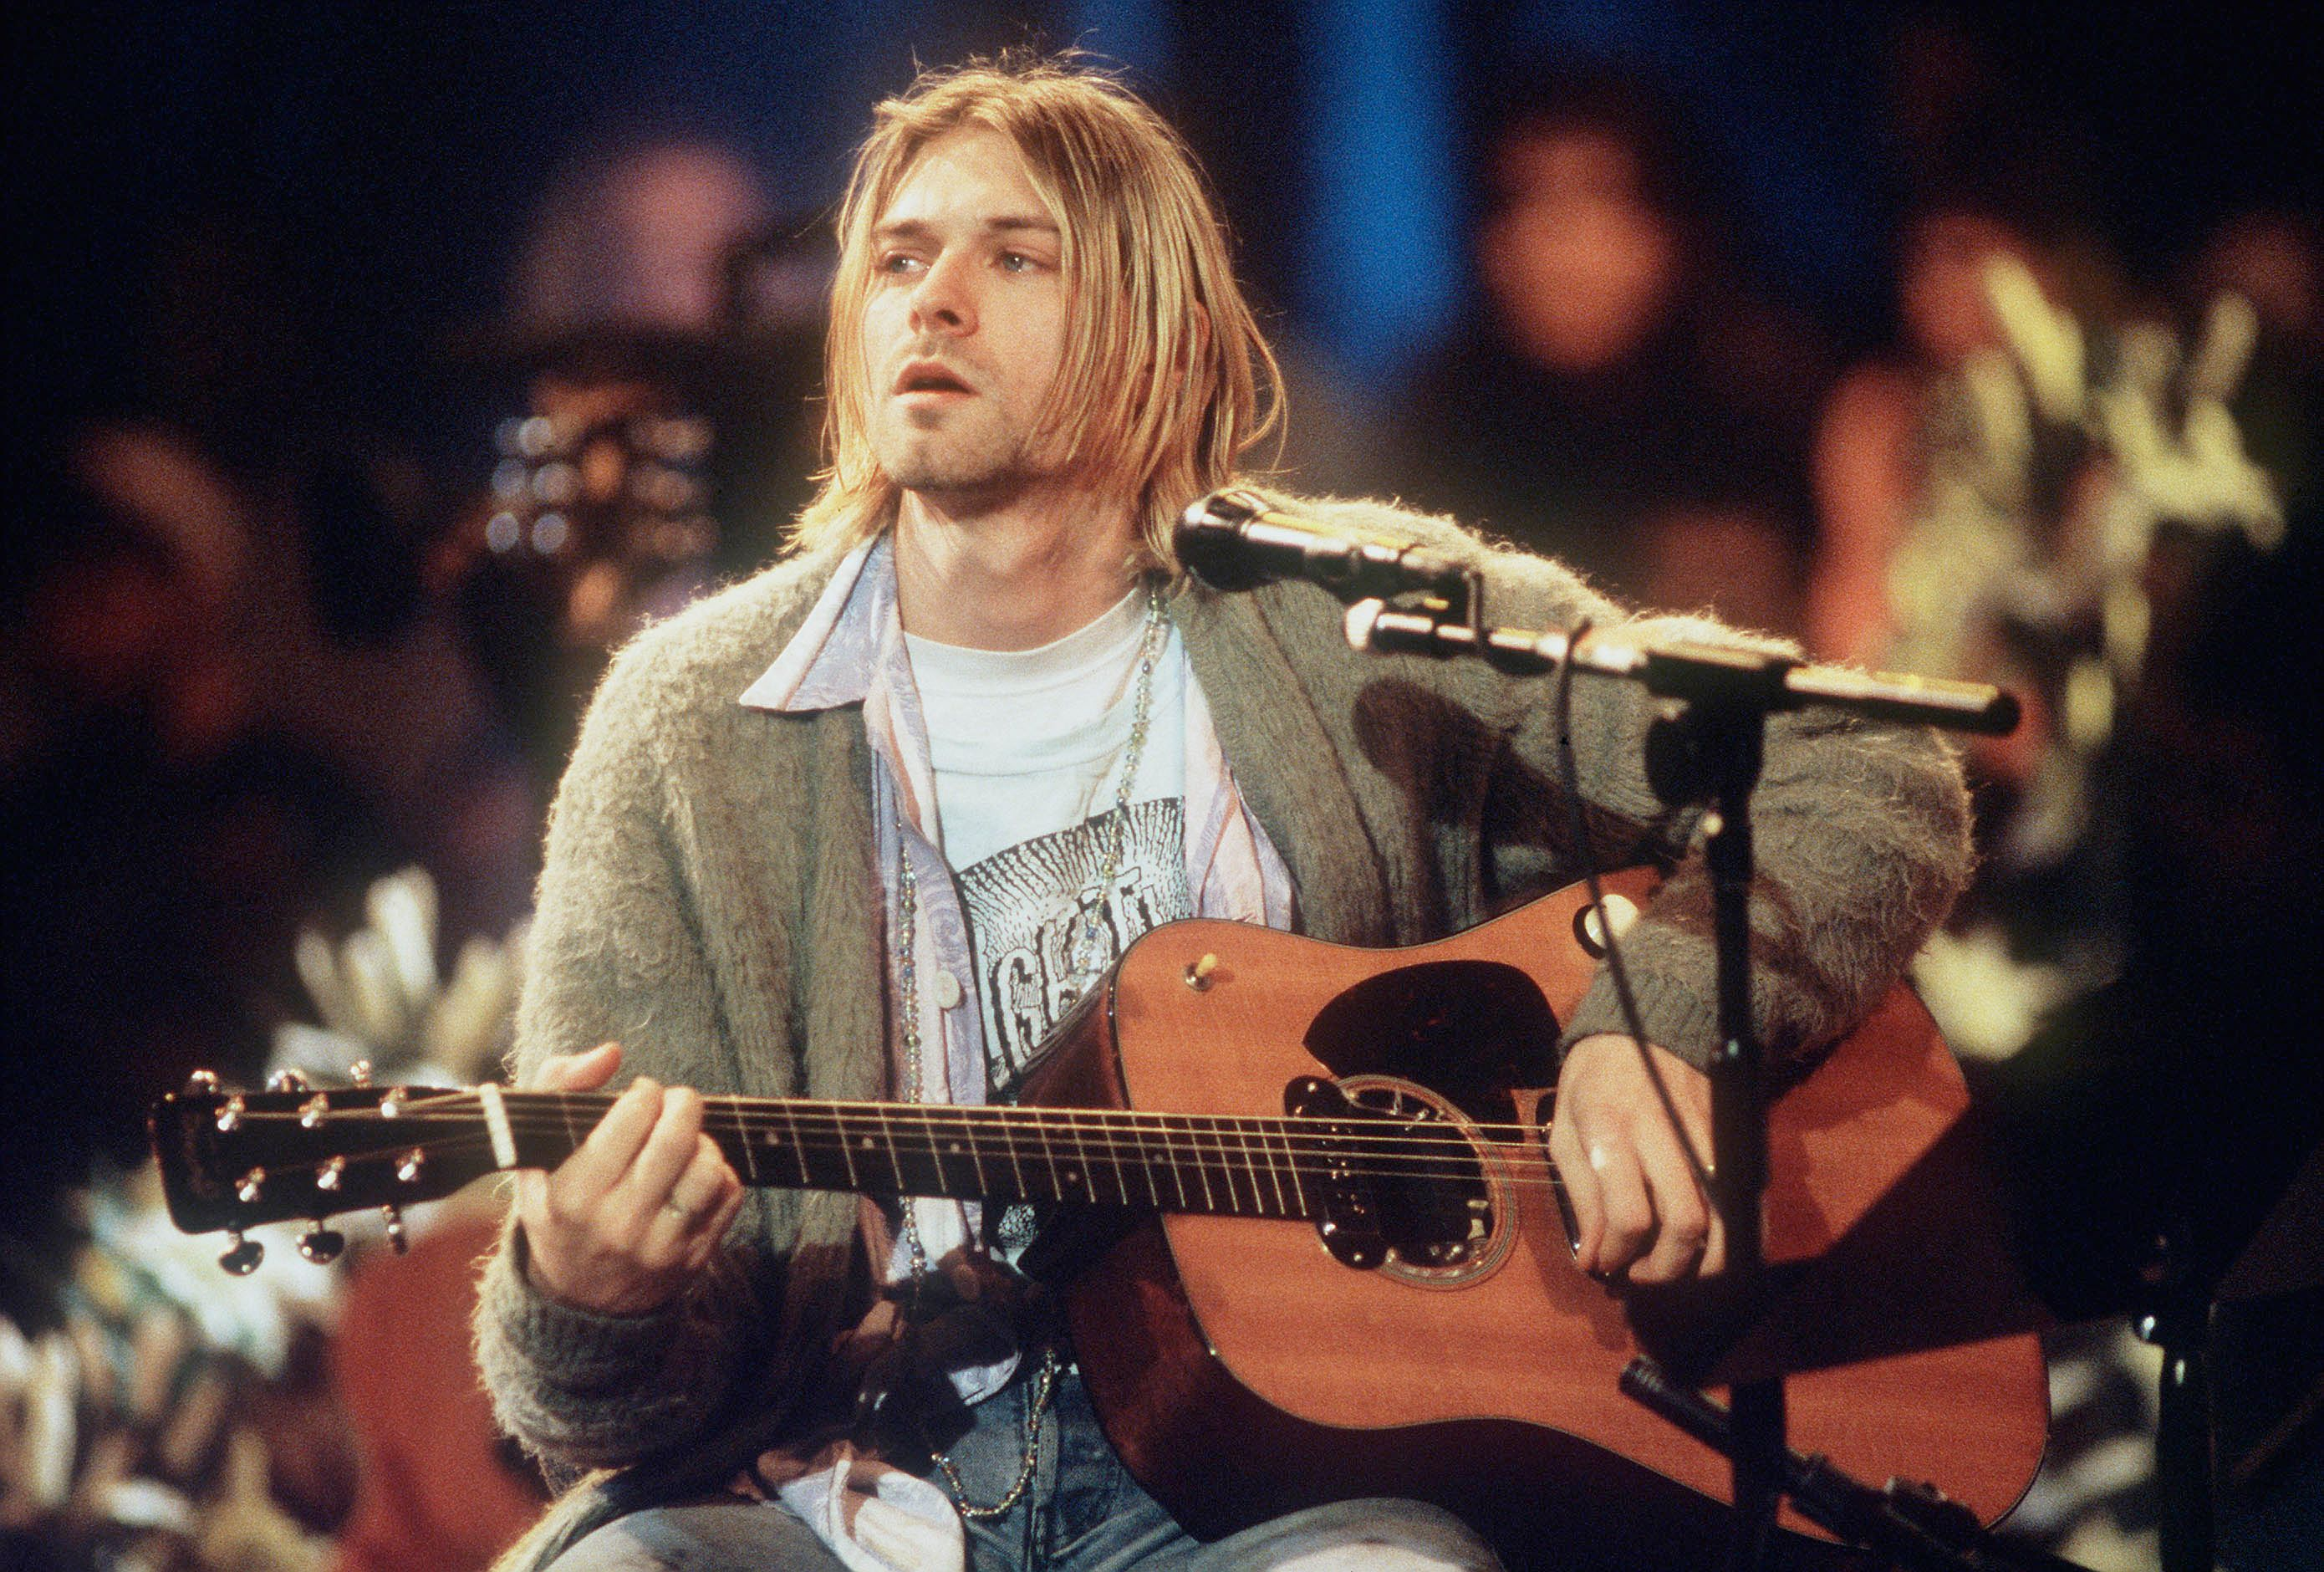 kurt-cobain-nirvana-mtv-unplugged-e3627468-cb34-46be-a8ce-39d305a356d7.jpg